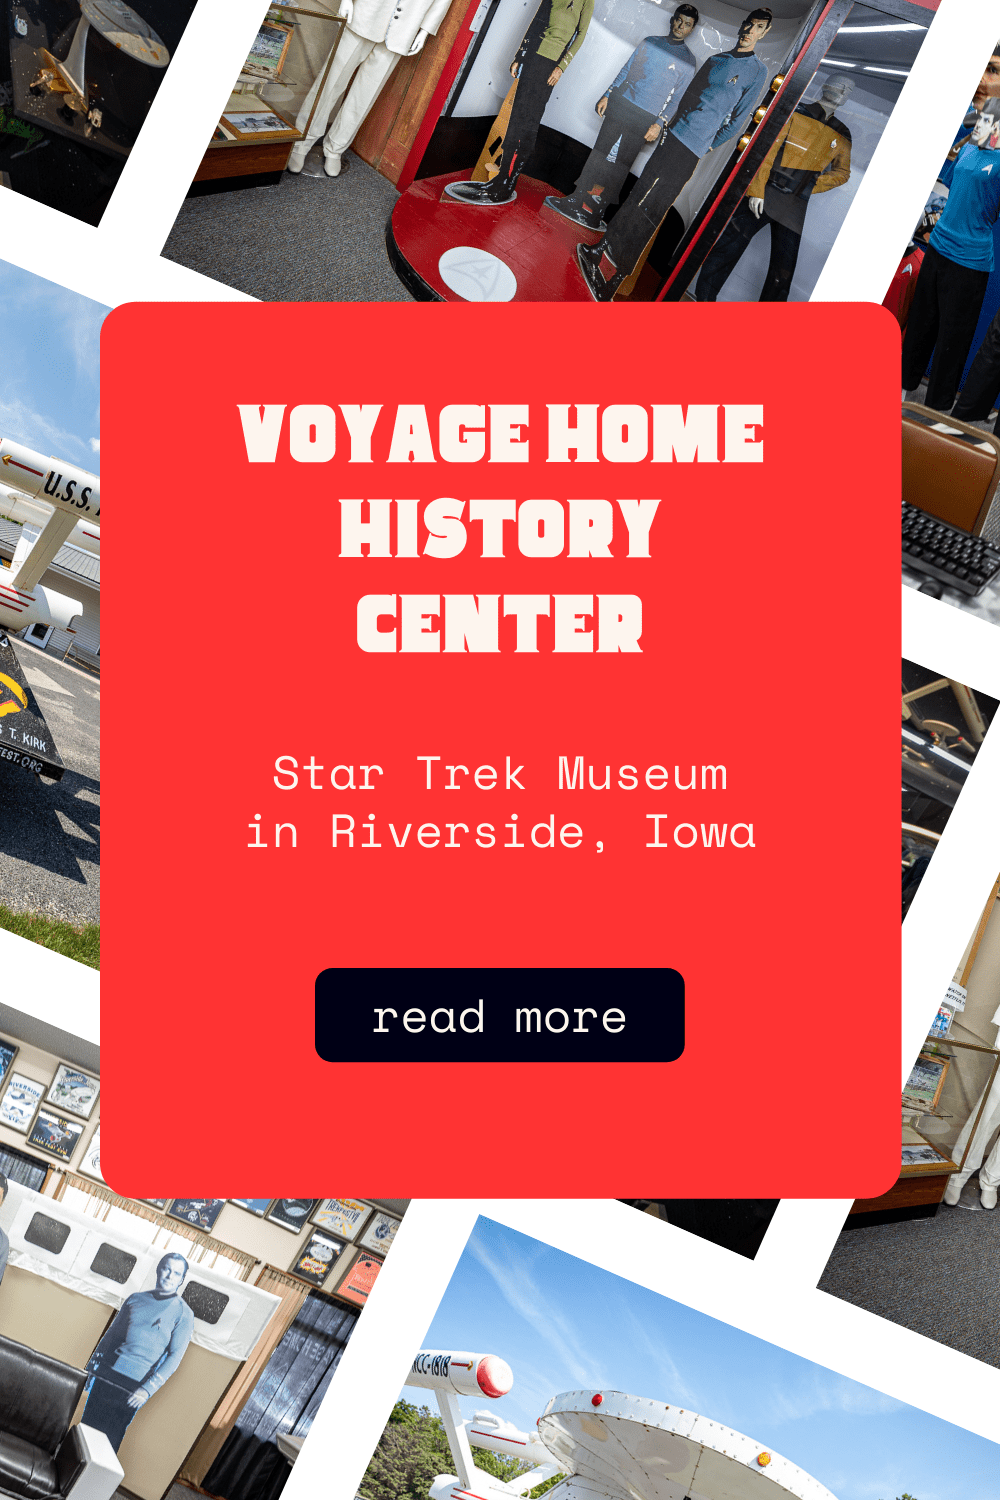 The Voyage Home History Center in Riverside, Iowa is a museum showcasing the town's history…and future history. But most people would just call it a Star Trek Museum. Located in the Future Birthplace of Captain James T. Kirk this roadside attraction is a must see road trip stop.  #StarTrek #IowaRoadsideAttractions #IowaRoadsideAttraction #RoadsideAttractions #RoadsideAttraction #RoadTrip #IowaRoadTrip #IowaThingsToDo #IowaRoadTripBucketLists #IowaBucketList #IowaRoadTripIdeas #IowaTravel